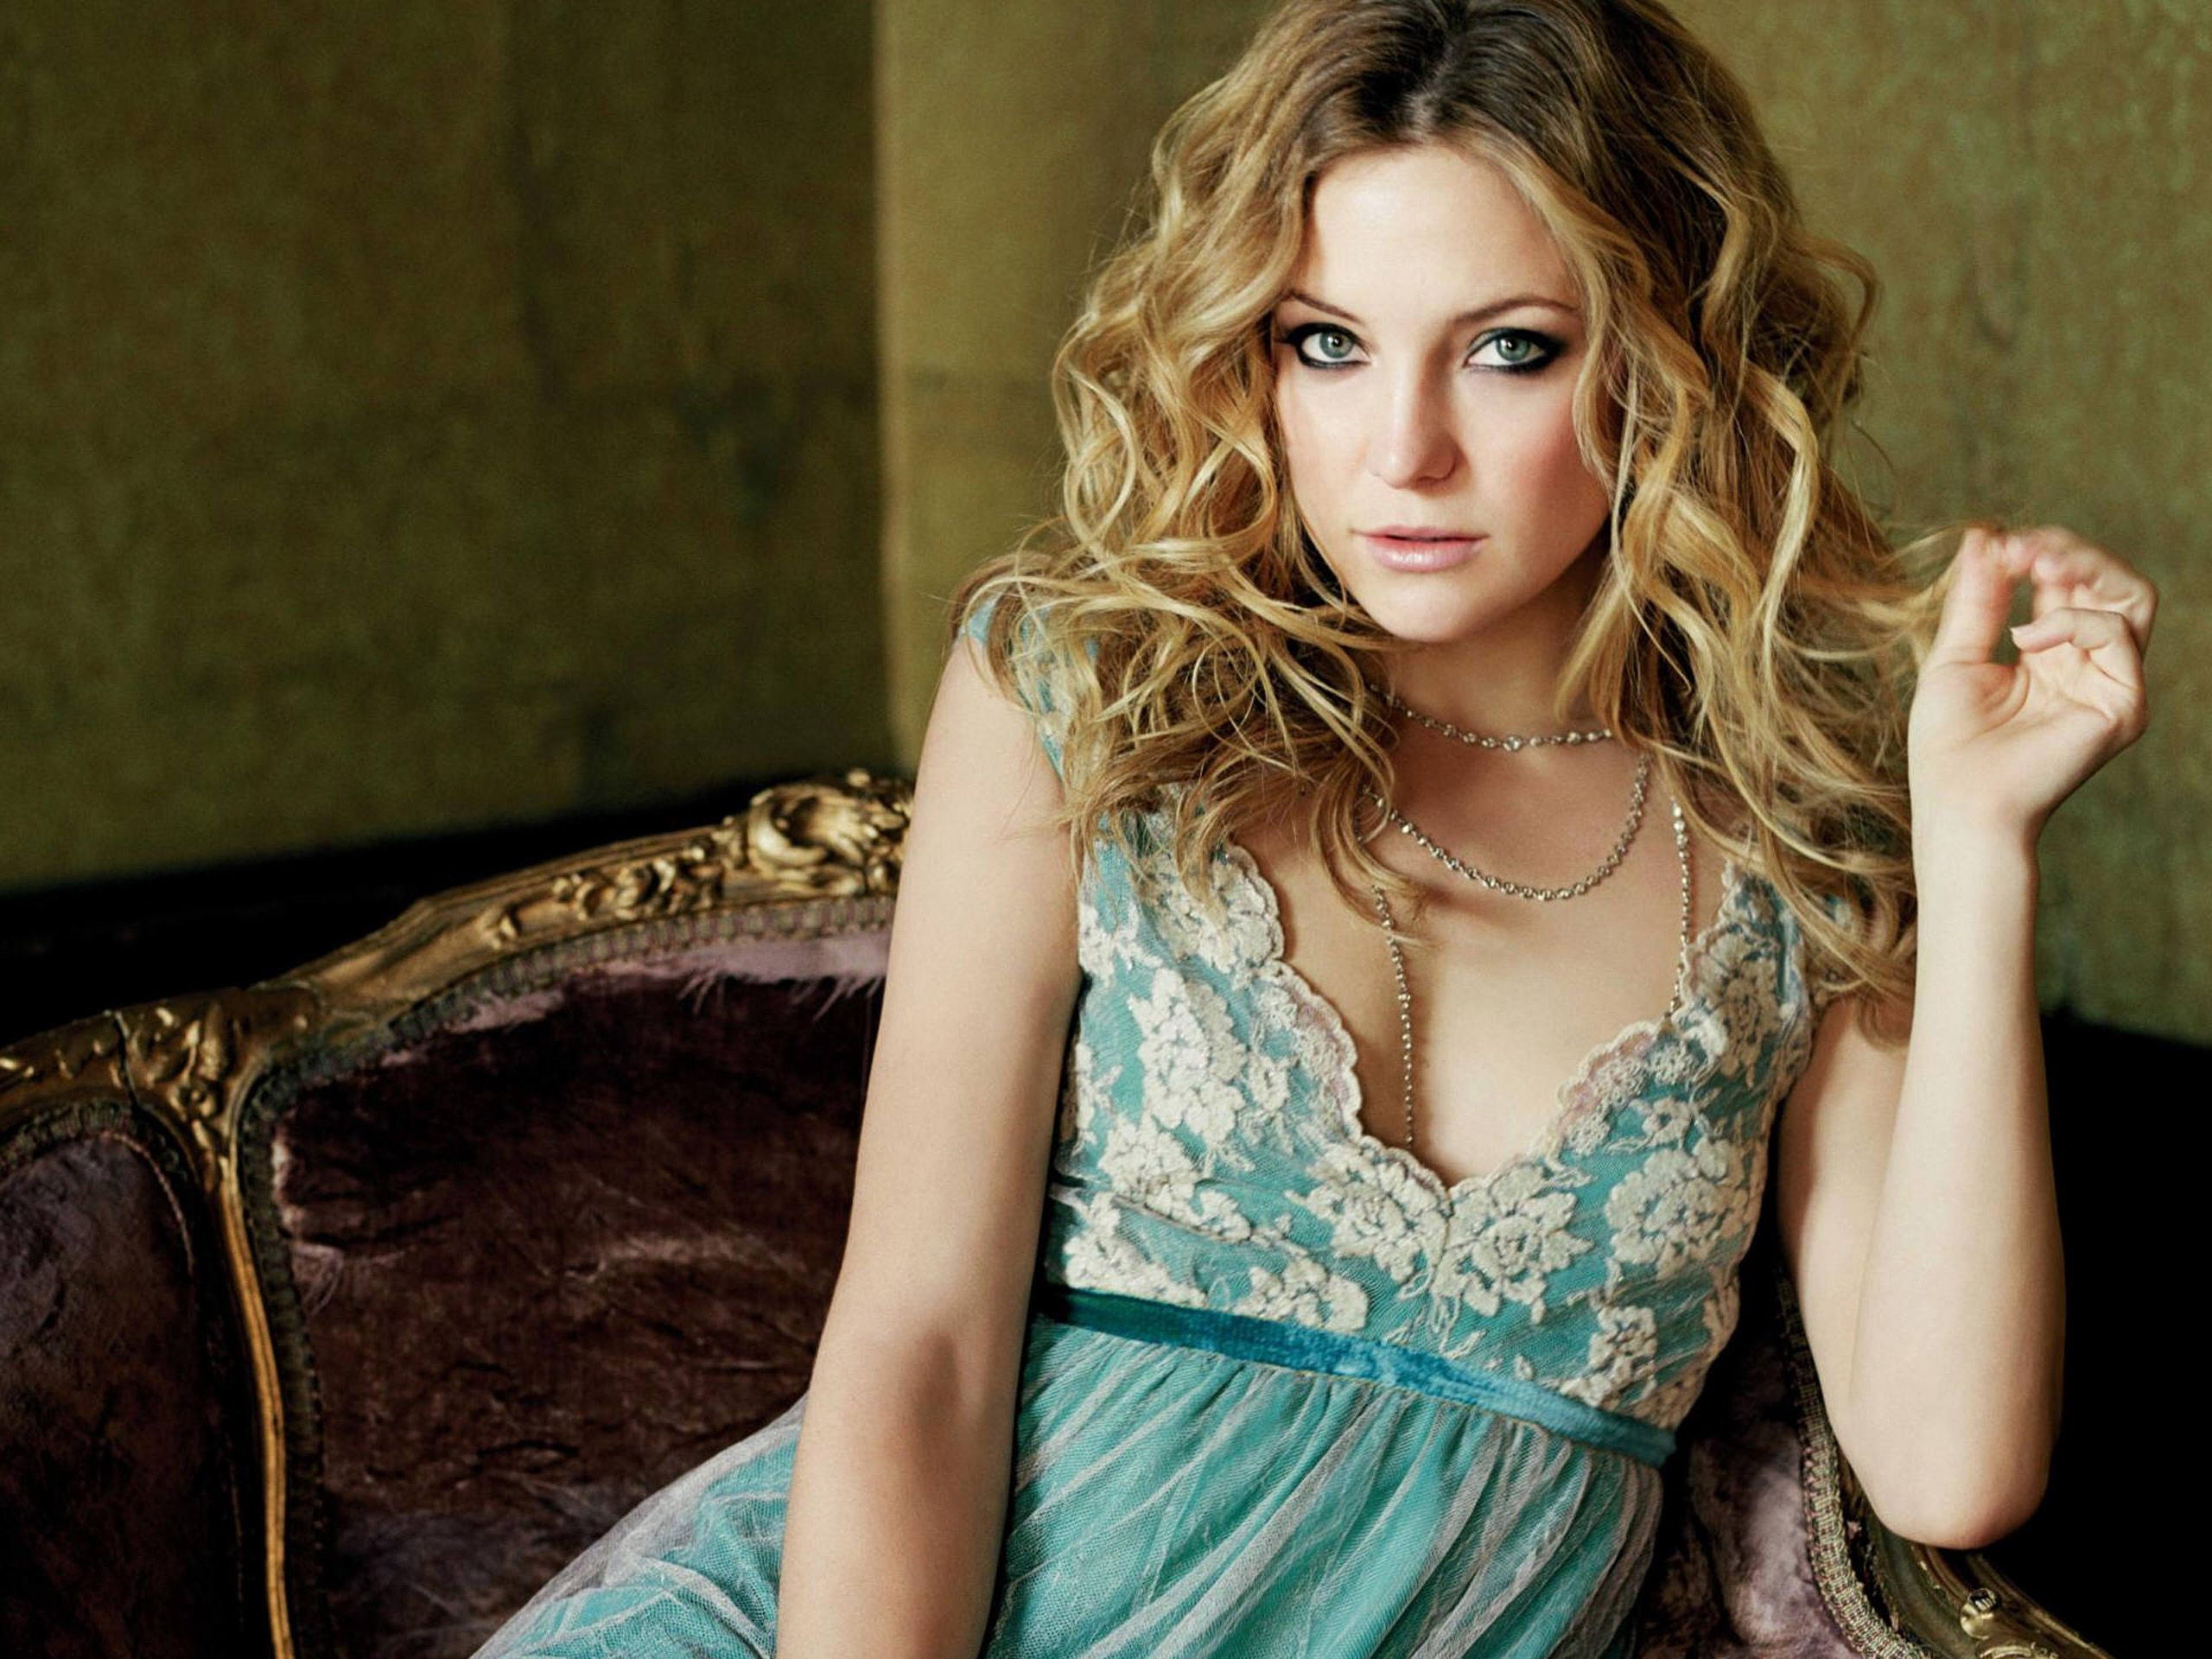 Kate Hudson sitting on a couch in blue dress